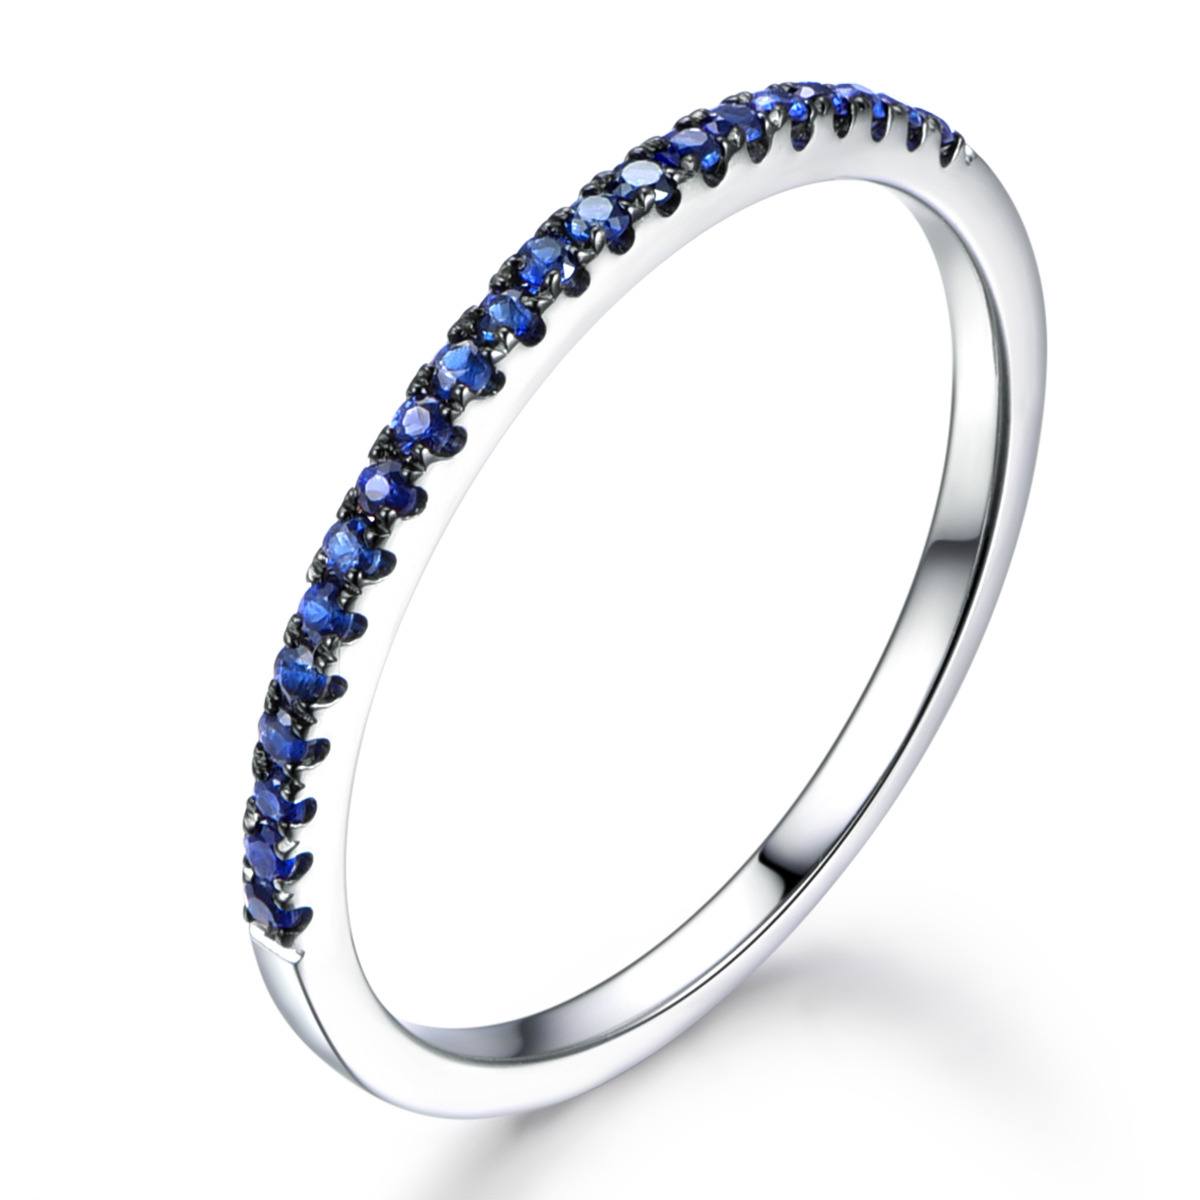 show me your diamond engagement rings with gemstone wedding bands sapphire wedding bands Show me your diamond engagement rings with gemstone wedding bands